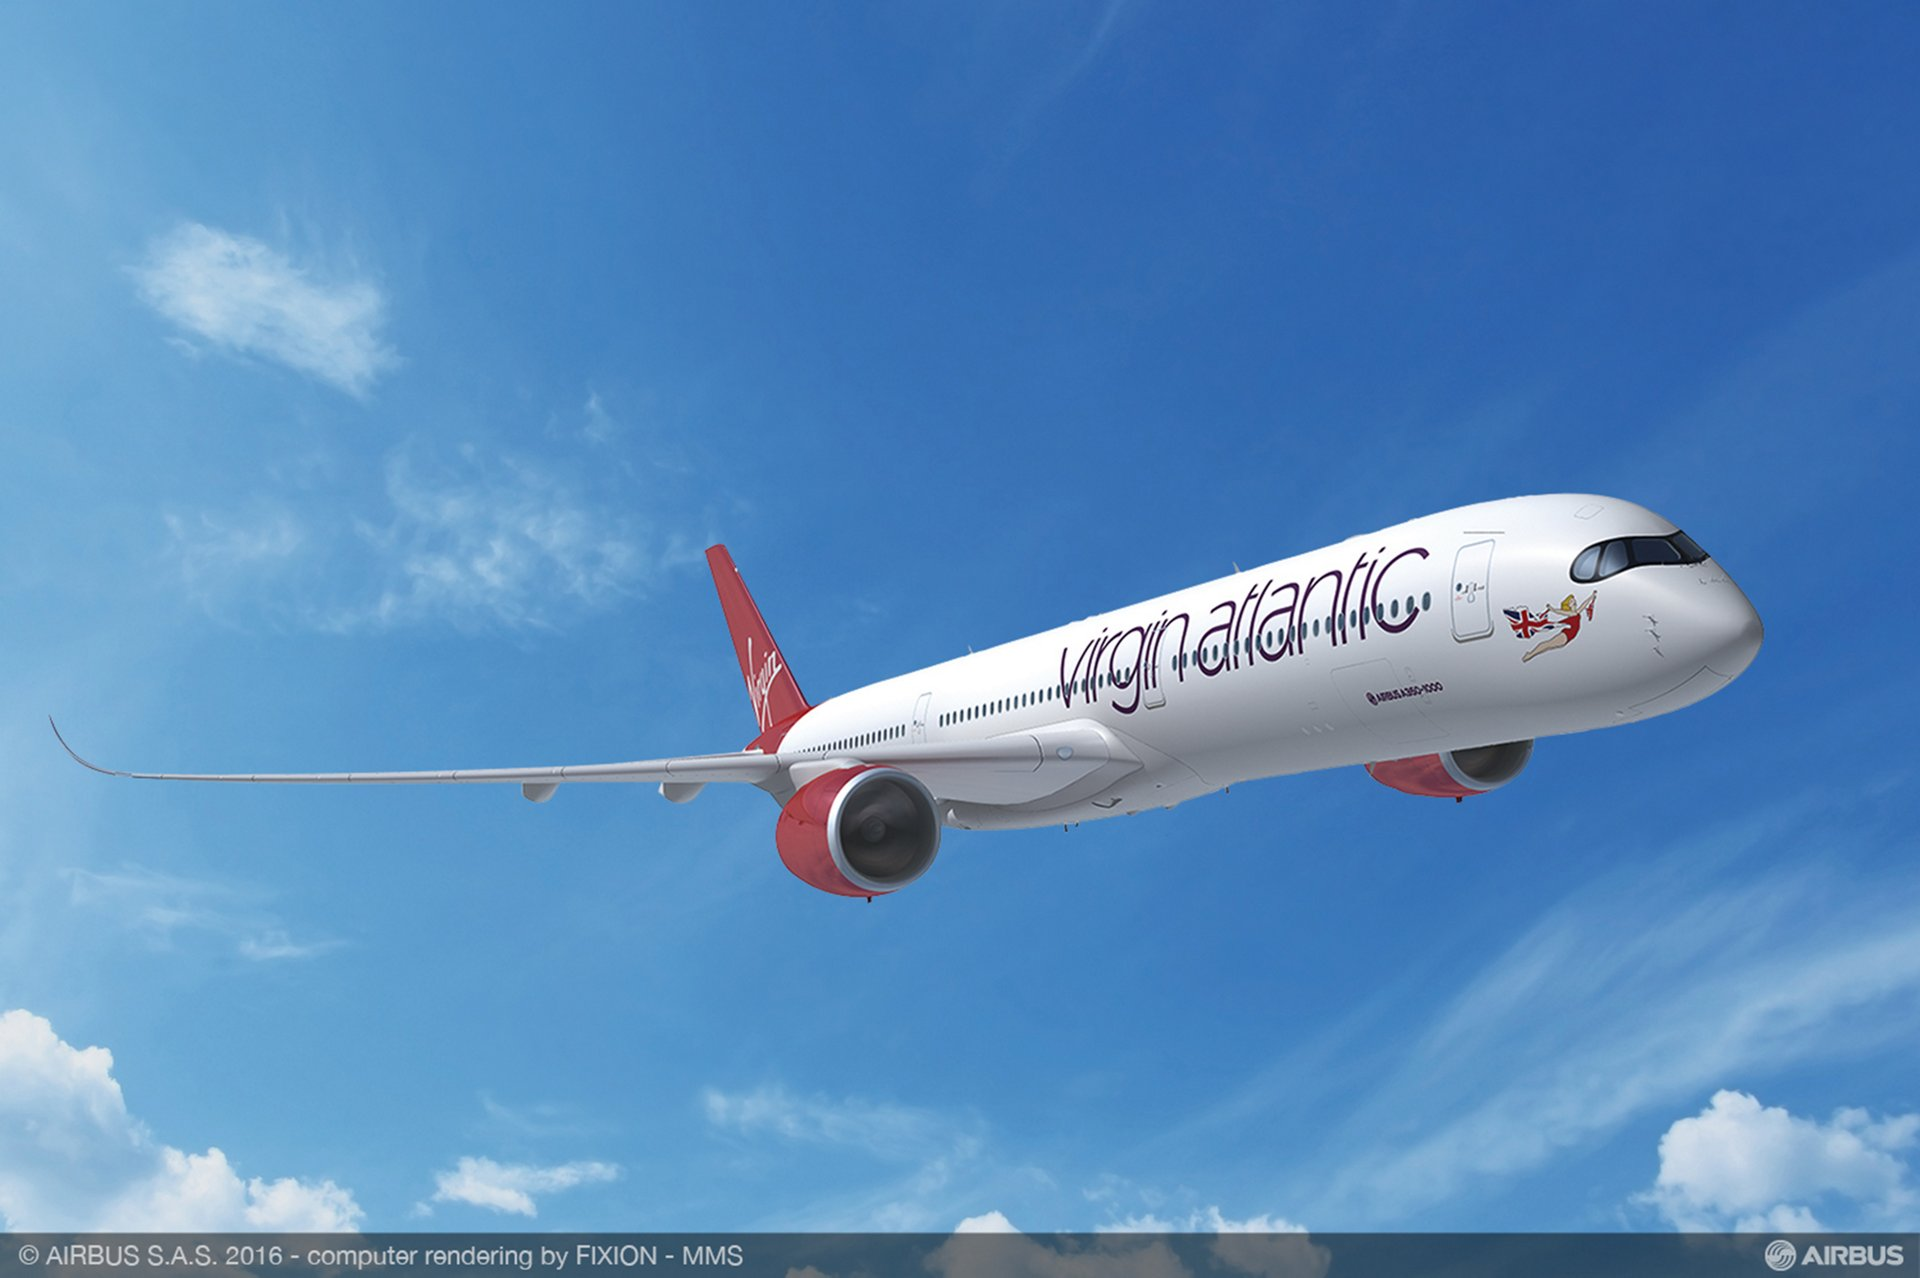 UK-based Virgin Atlantic Airways has selected Airbus' A350-1000 to become the latest jetliner in its fleet, purchasing eight for deliveries commencing in 2019, and four new aircraft on long-term leases from Air Lease Corporation from 2020